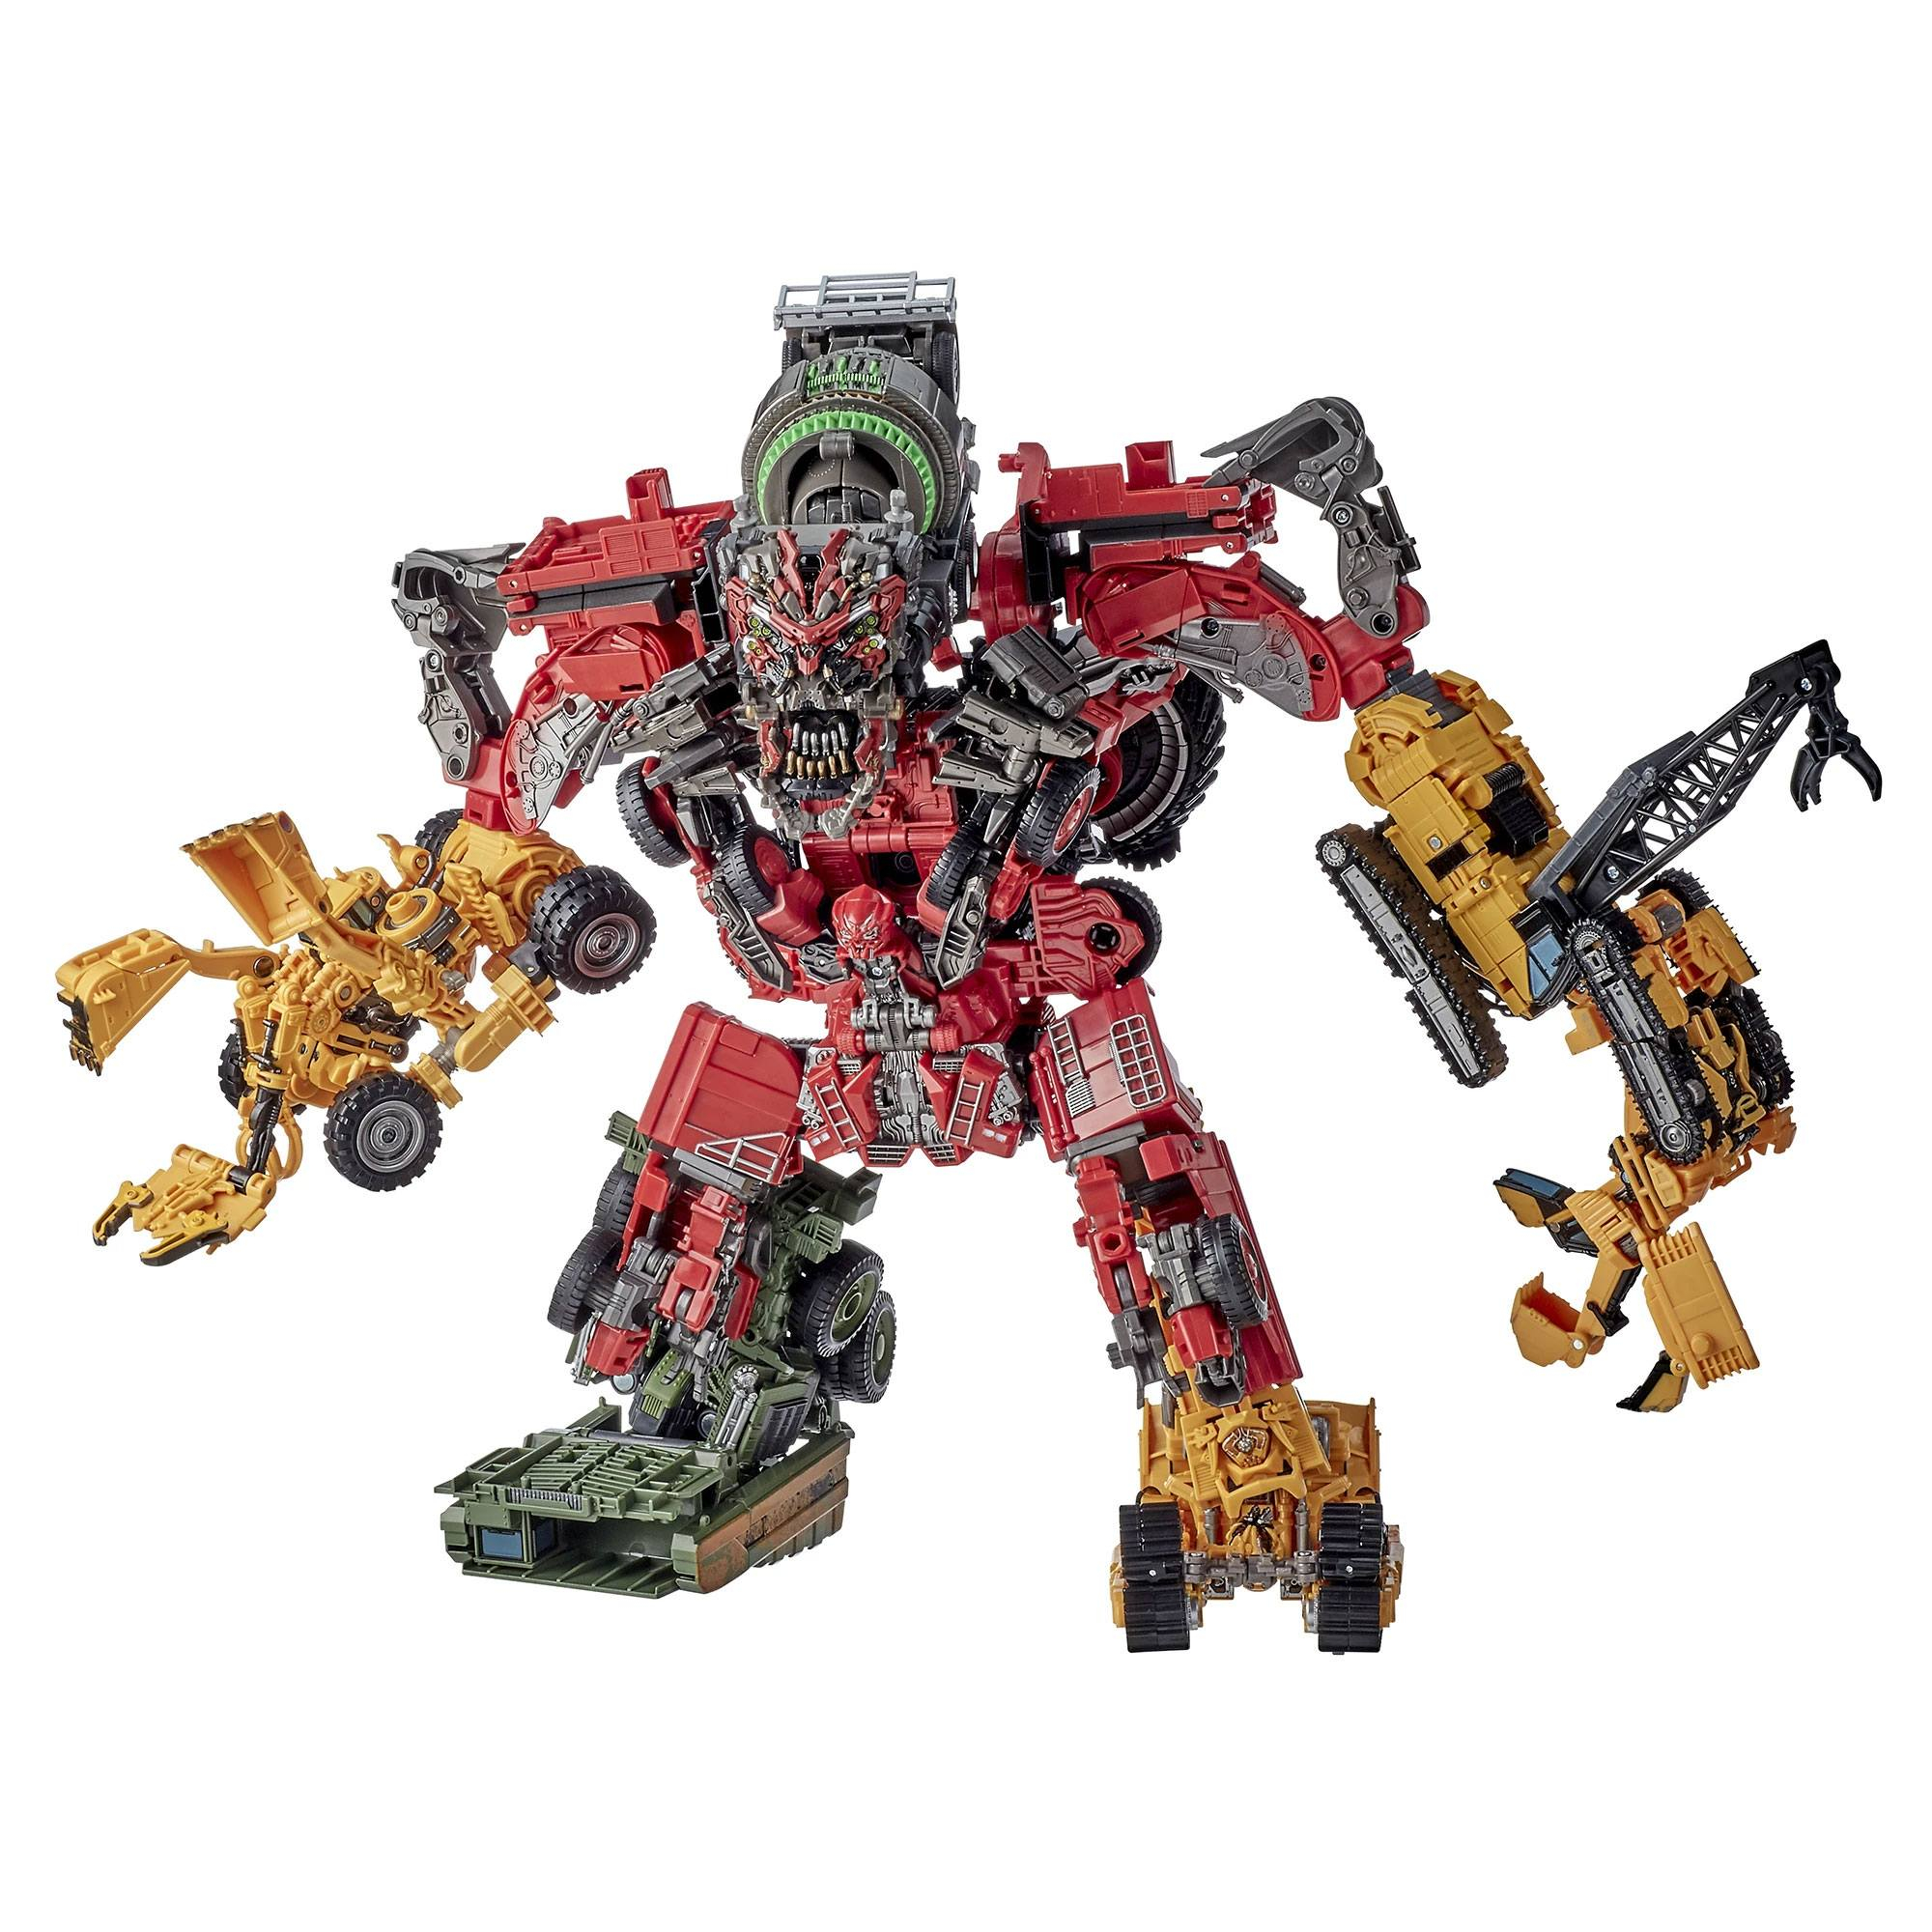 Transformers - Revenge of the Fallen Studio Series Action Figure: DEVASTATOR by Hasbro